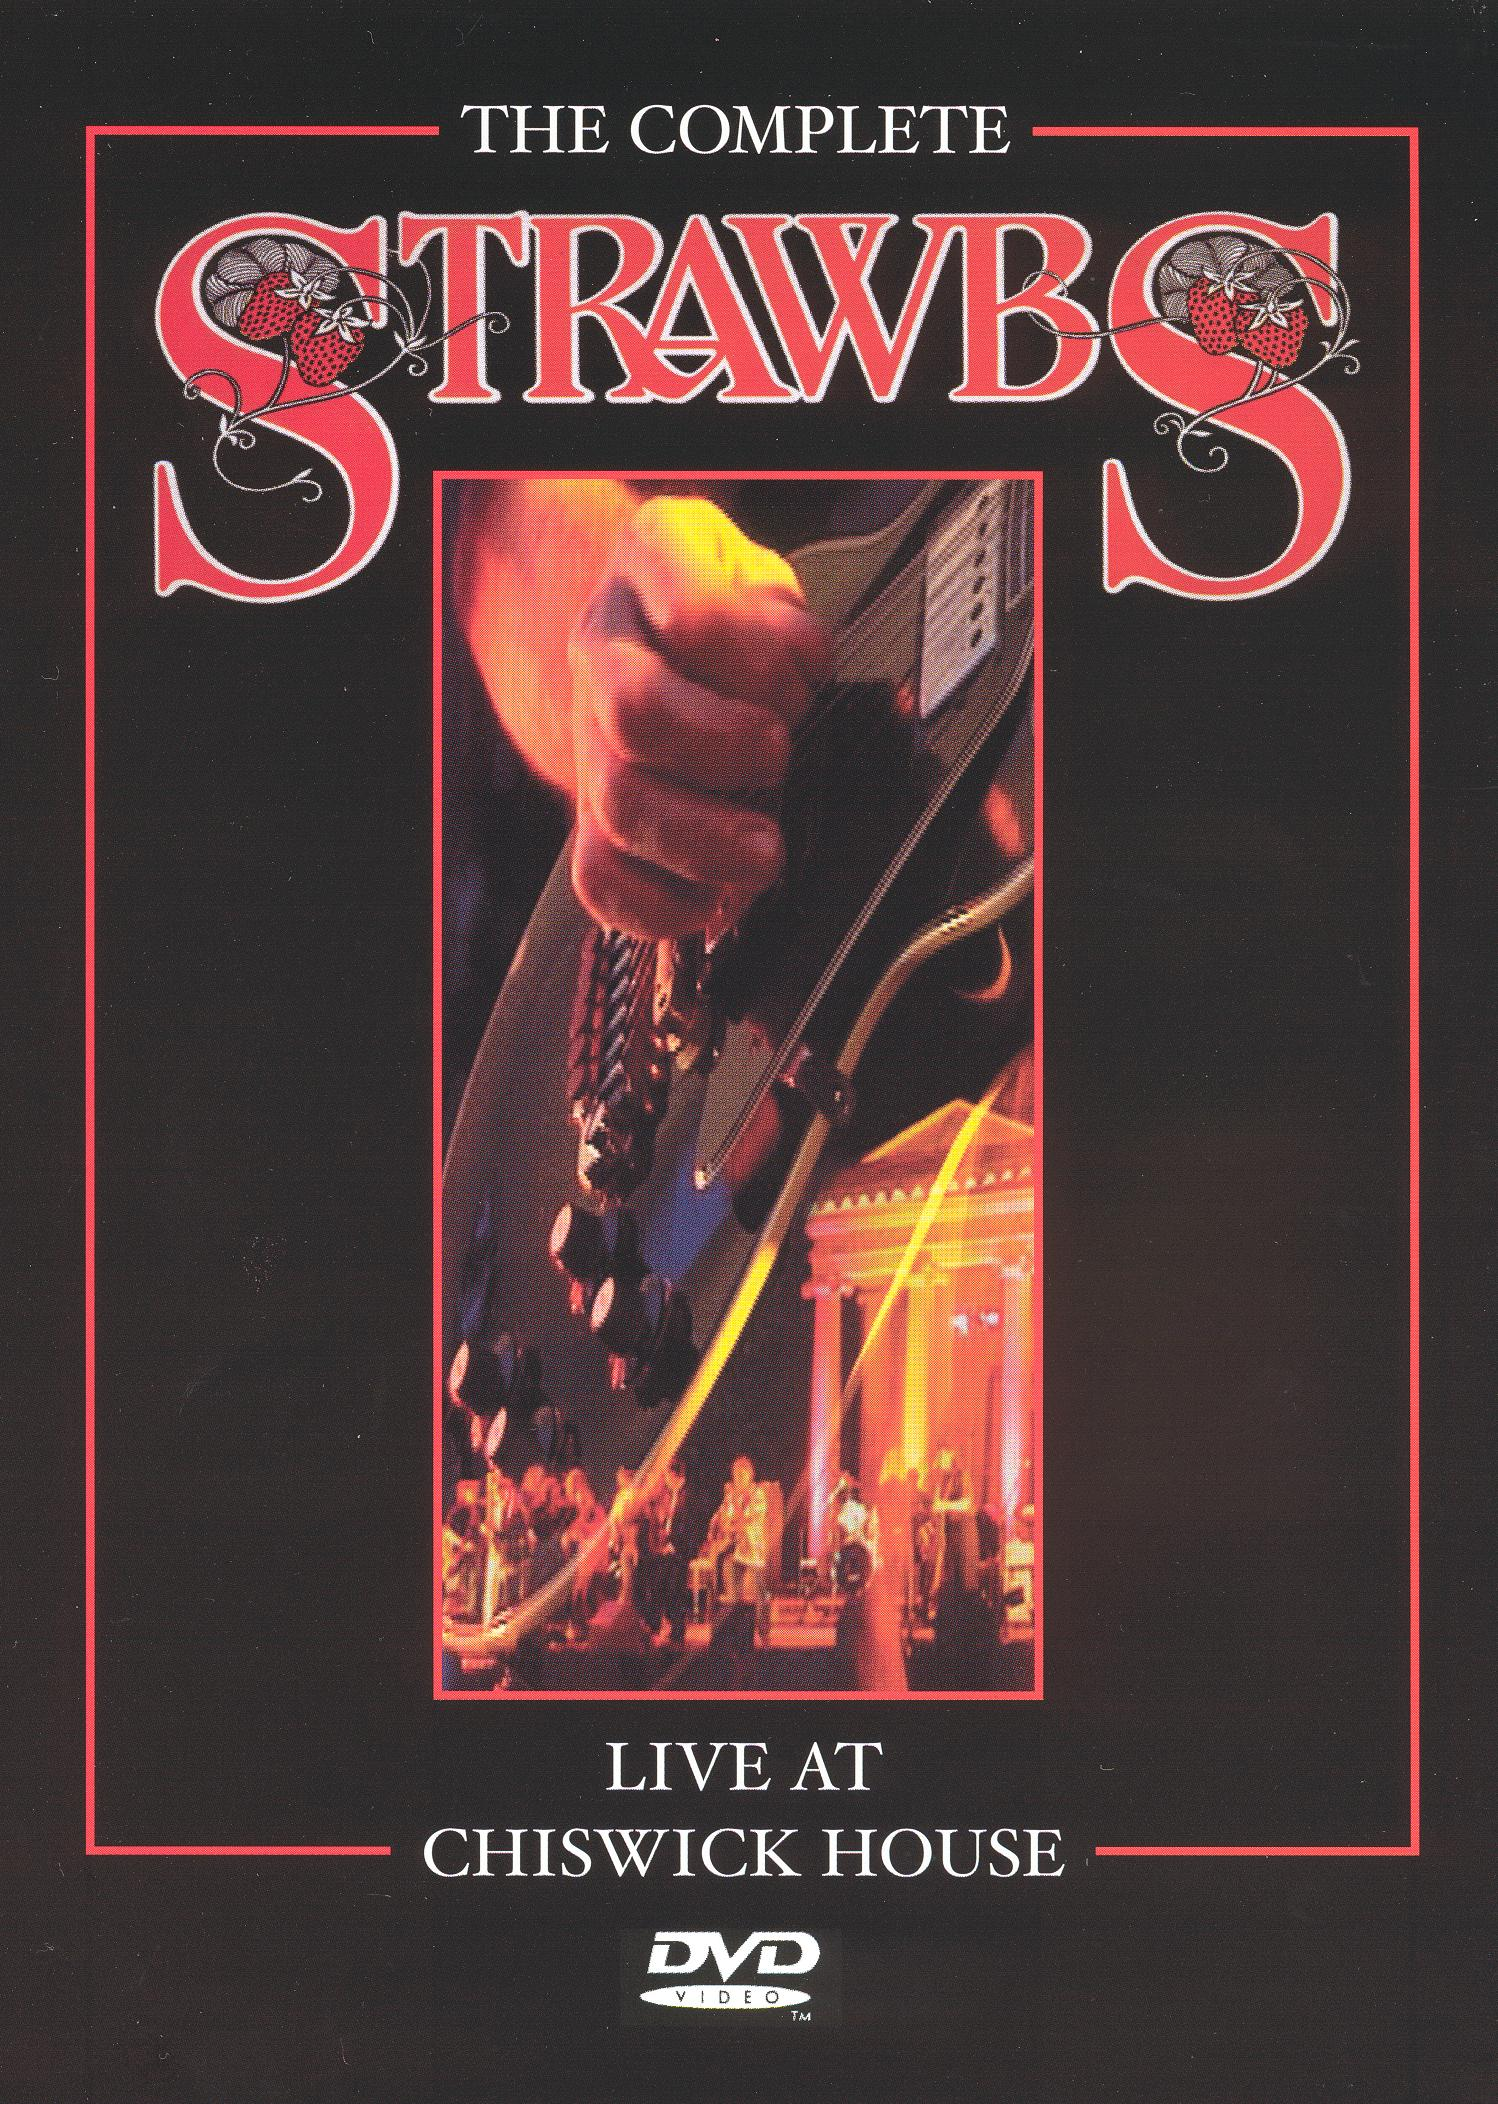 The Strawbs: The Complete Strawbs - Live at Chiswick House